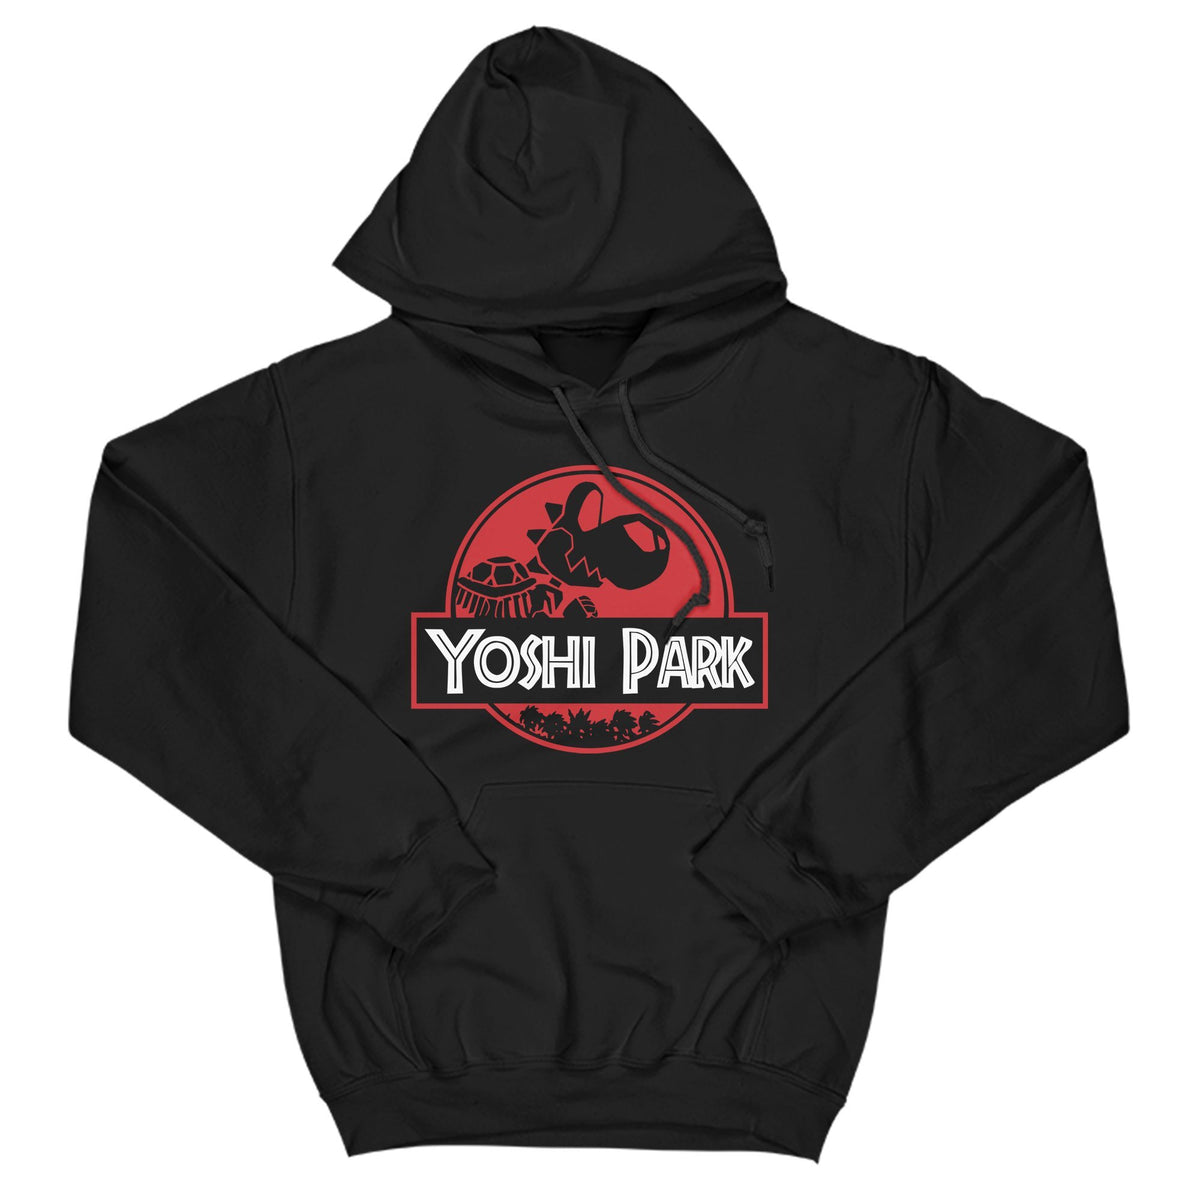 Yoshi Park Primate Novelty Hoodie Adults: S